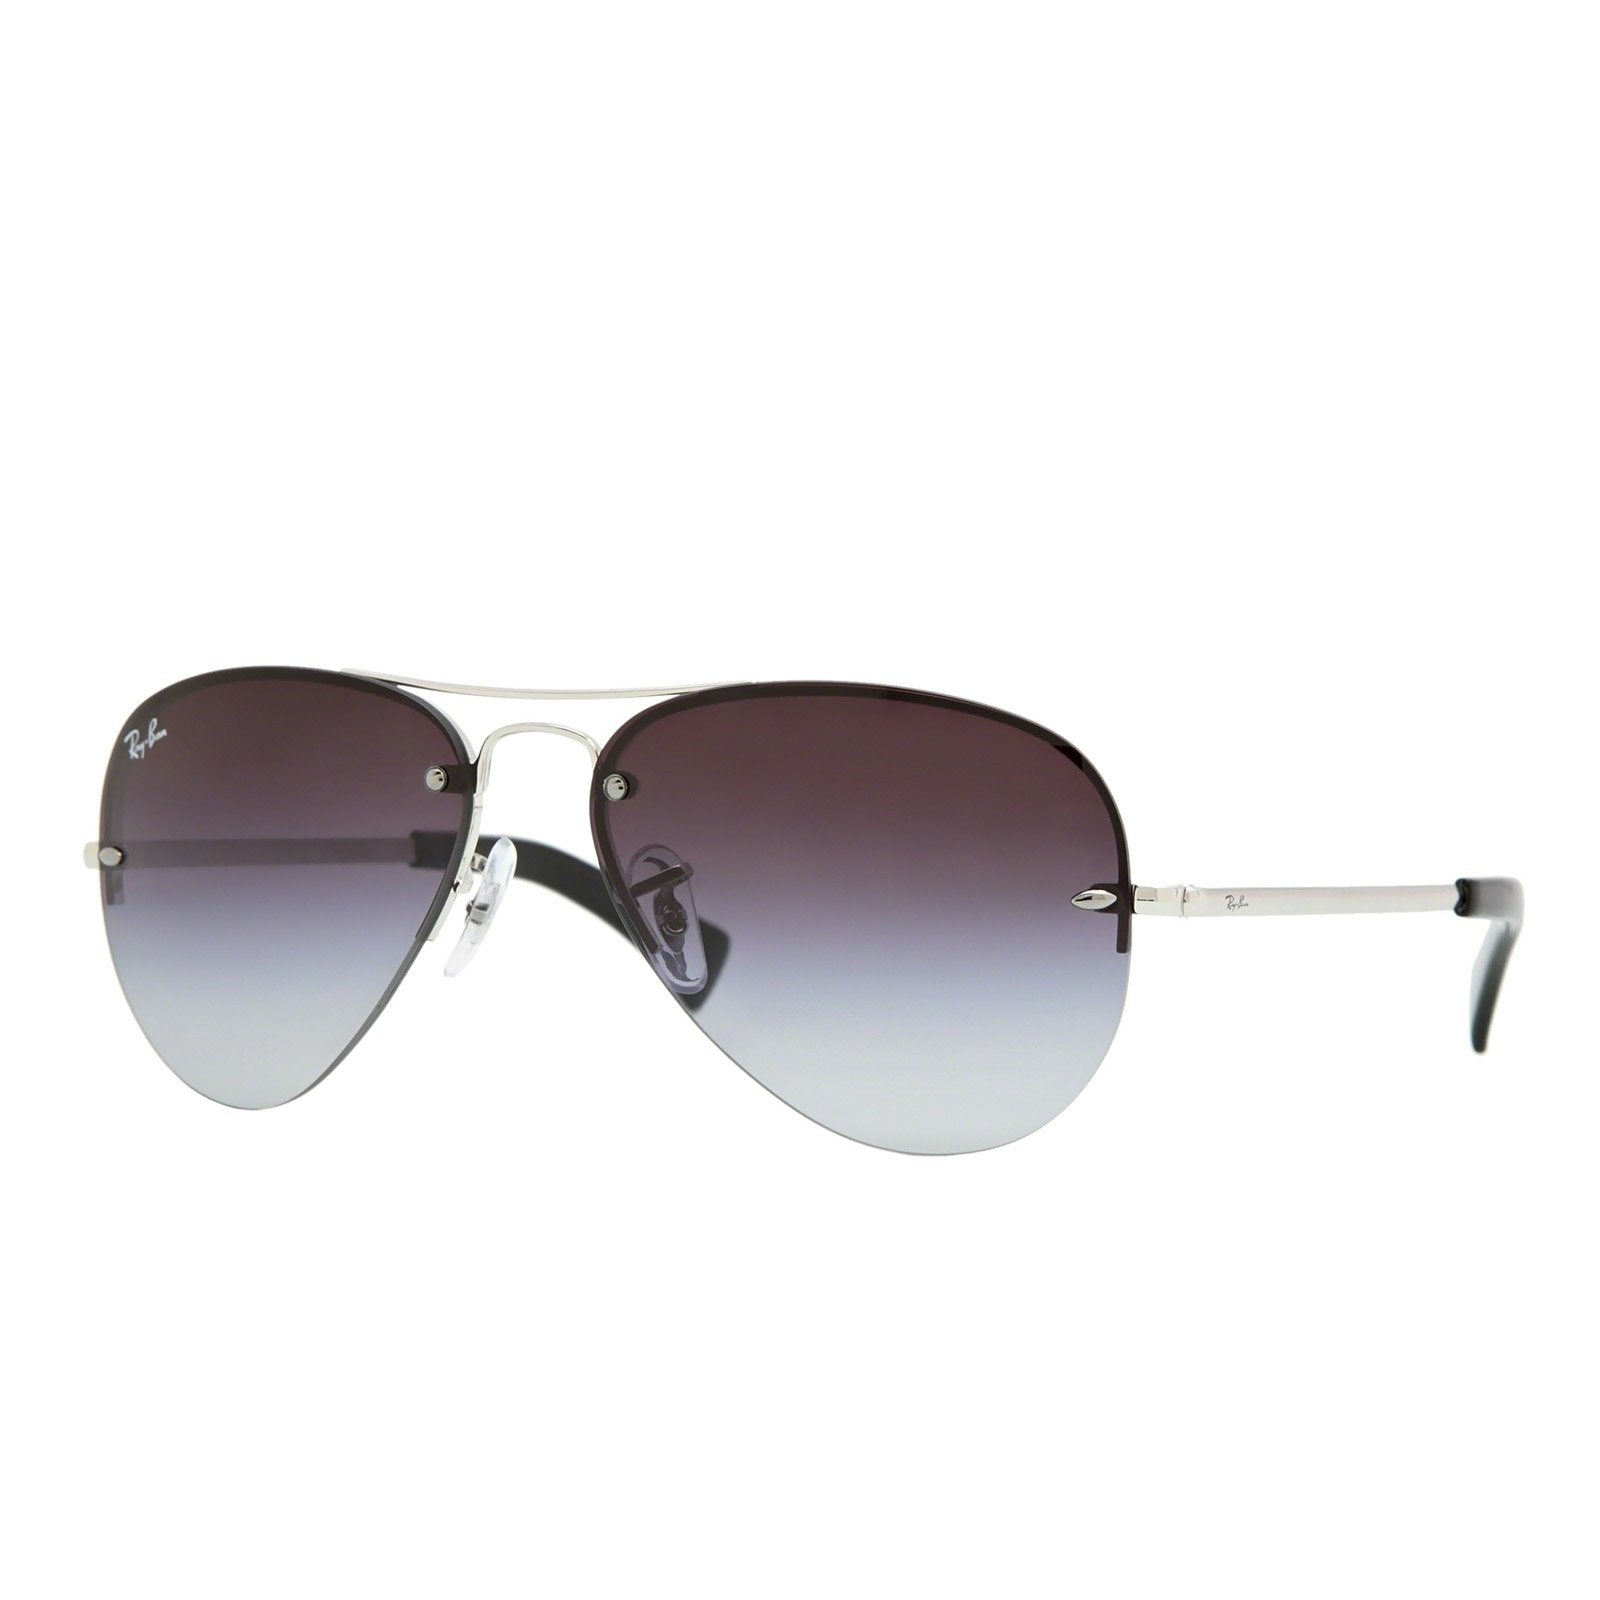 Ray-Ban RB3449 003/8G Sunglasses